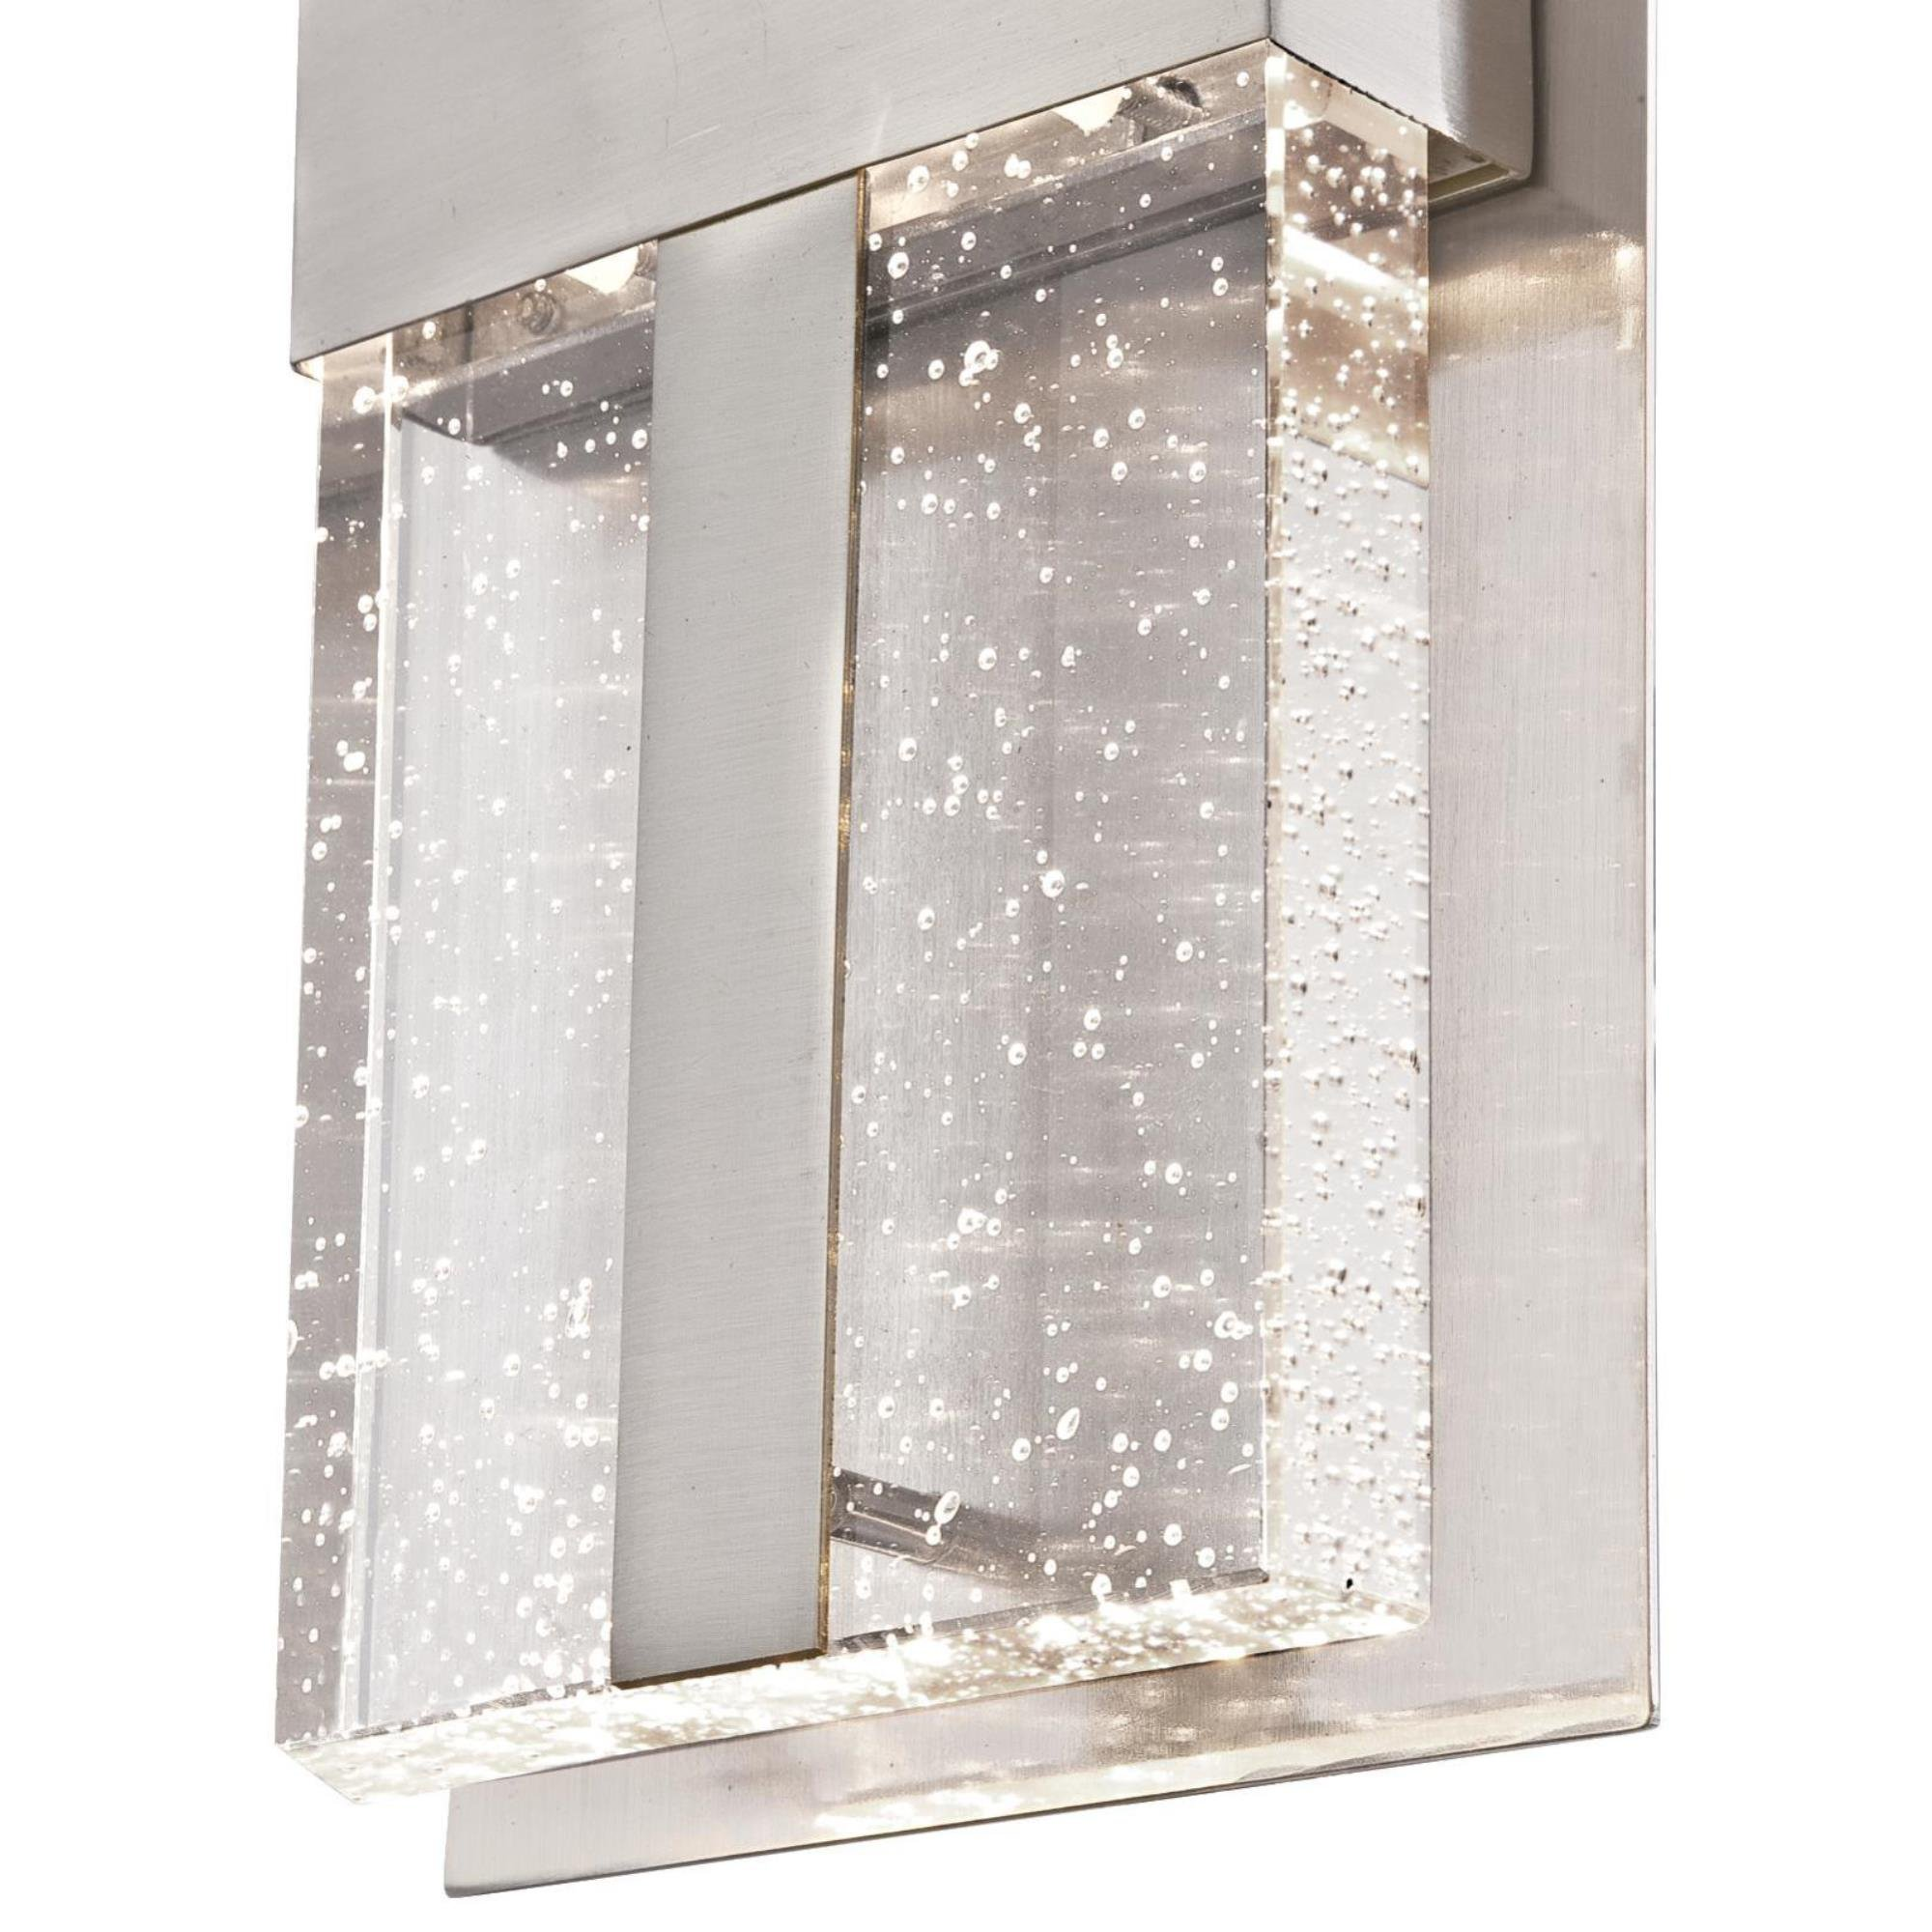 Westinghouse 6349000 Cava II One LED Outdoor Wall Fixture, Brushed Nickel Finish with Bubble Glass, 1 Light by Westinghouse (Image #5)